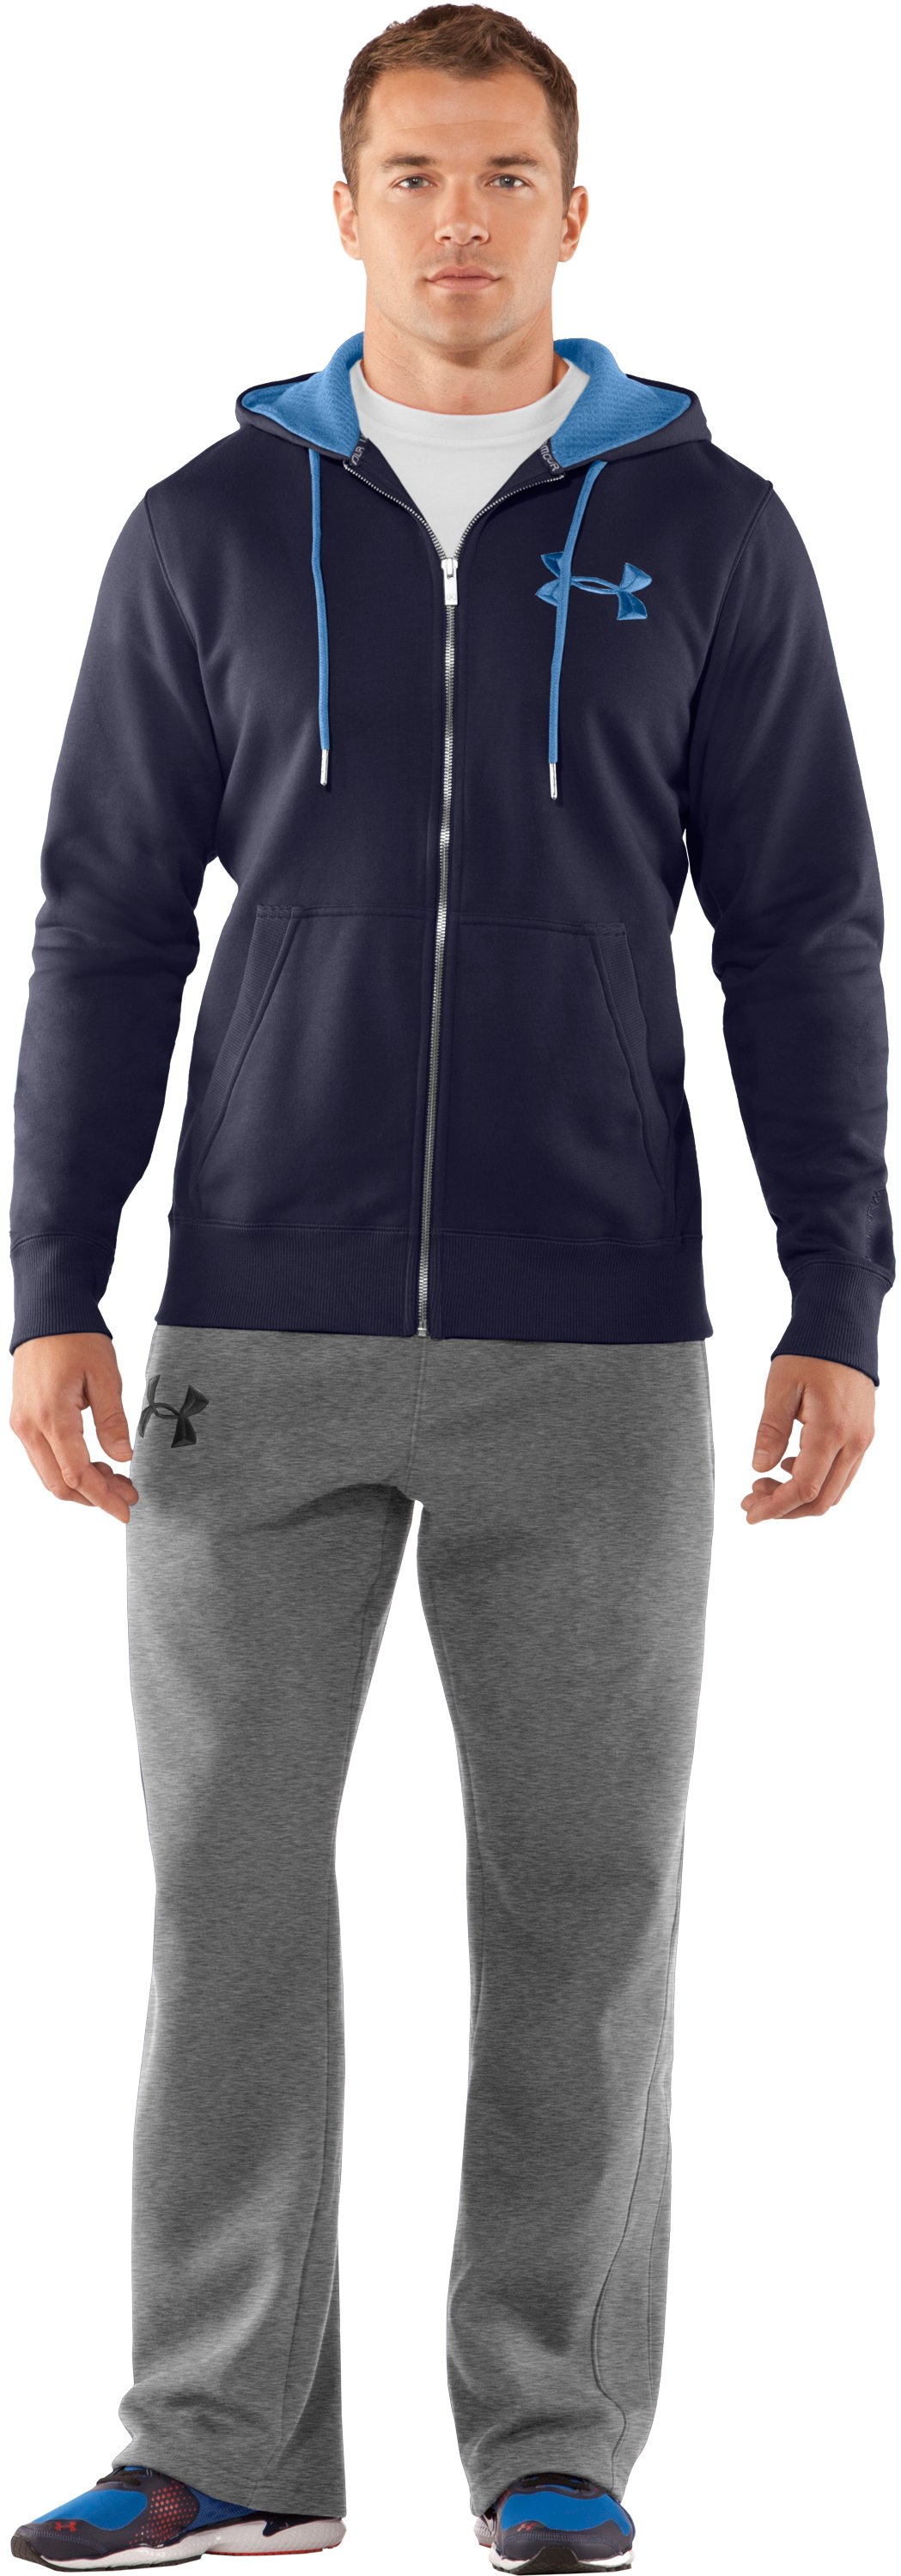 Men's Charged Cotton® Storm Full Zip Hoodie, Midnight Navy